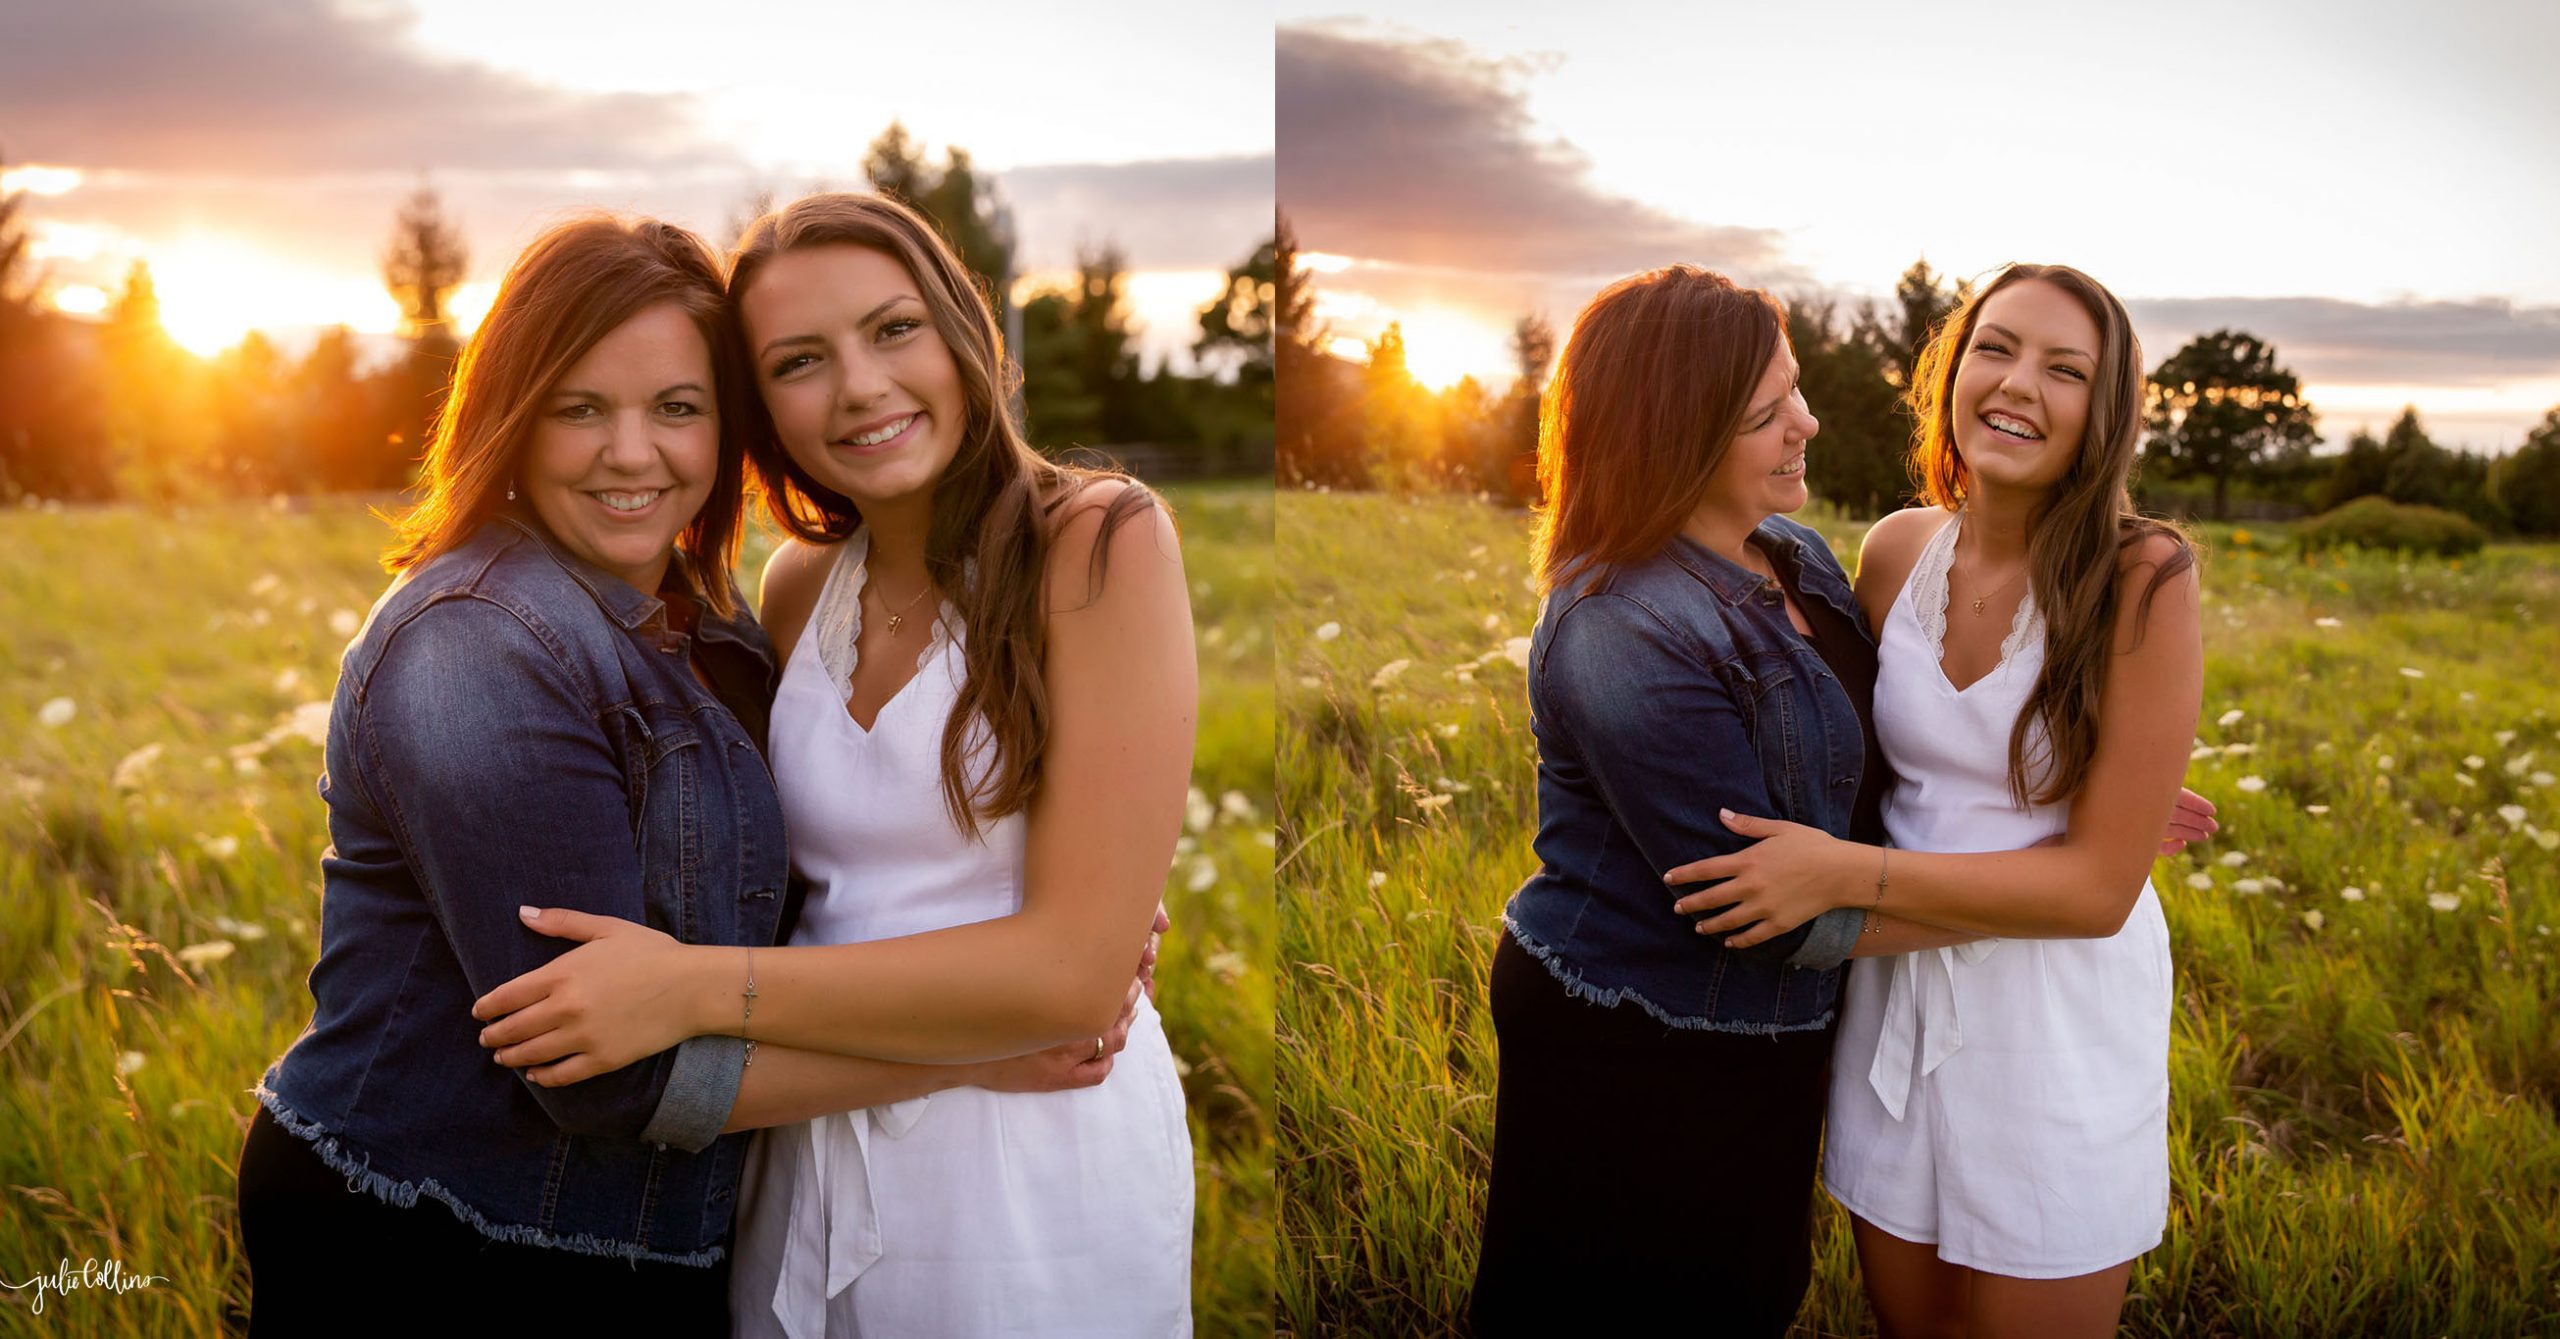 High school senior smiling with mom in field in Delafield, Wisconsin